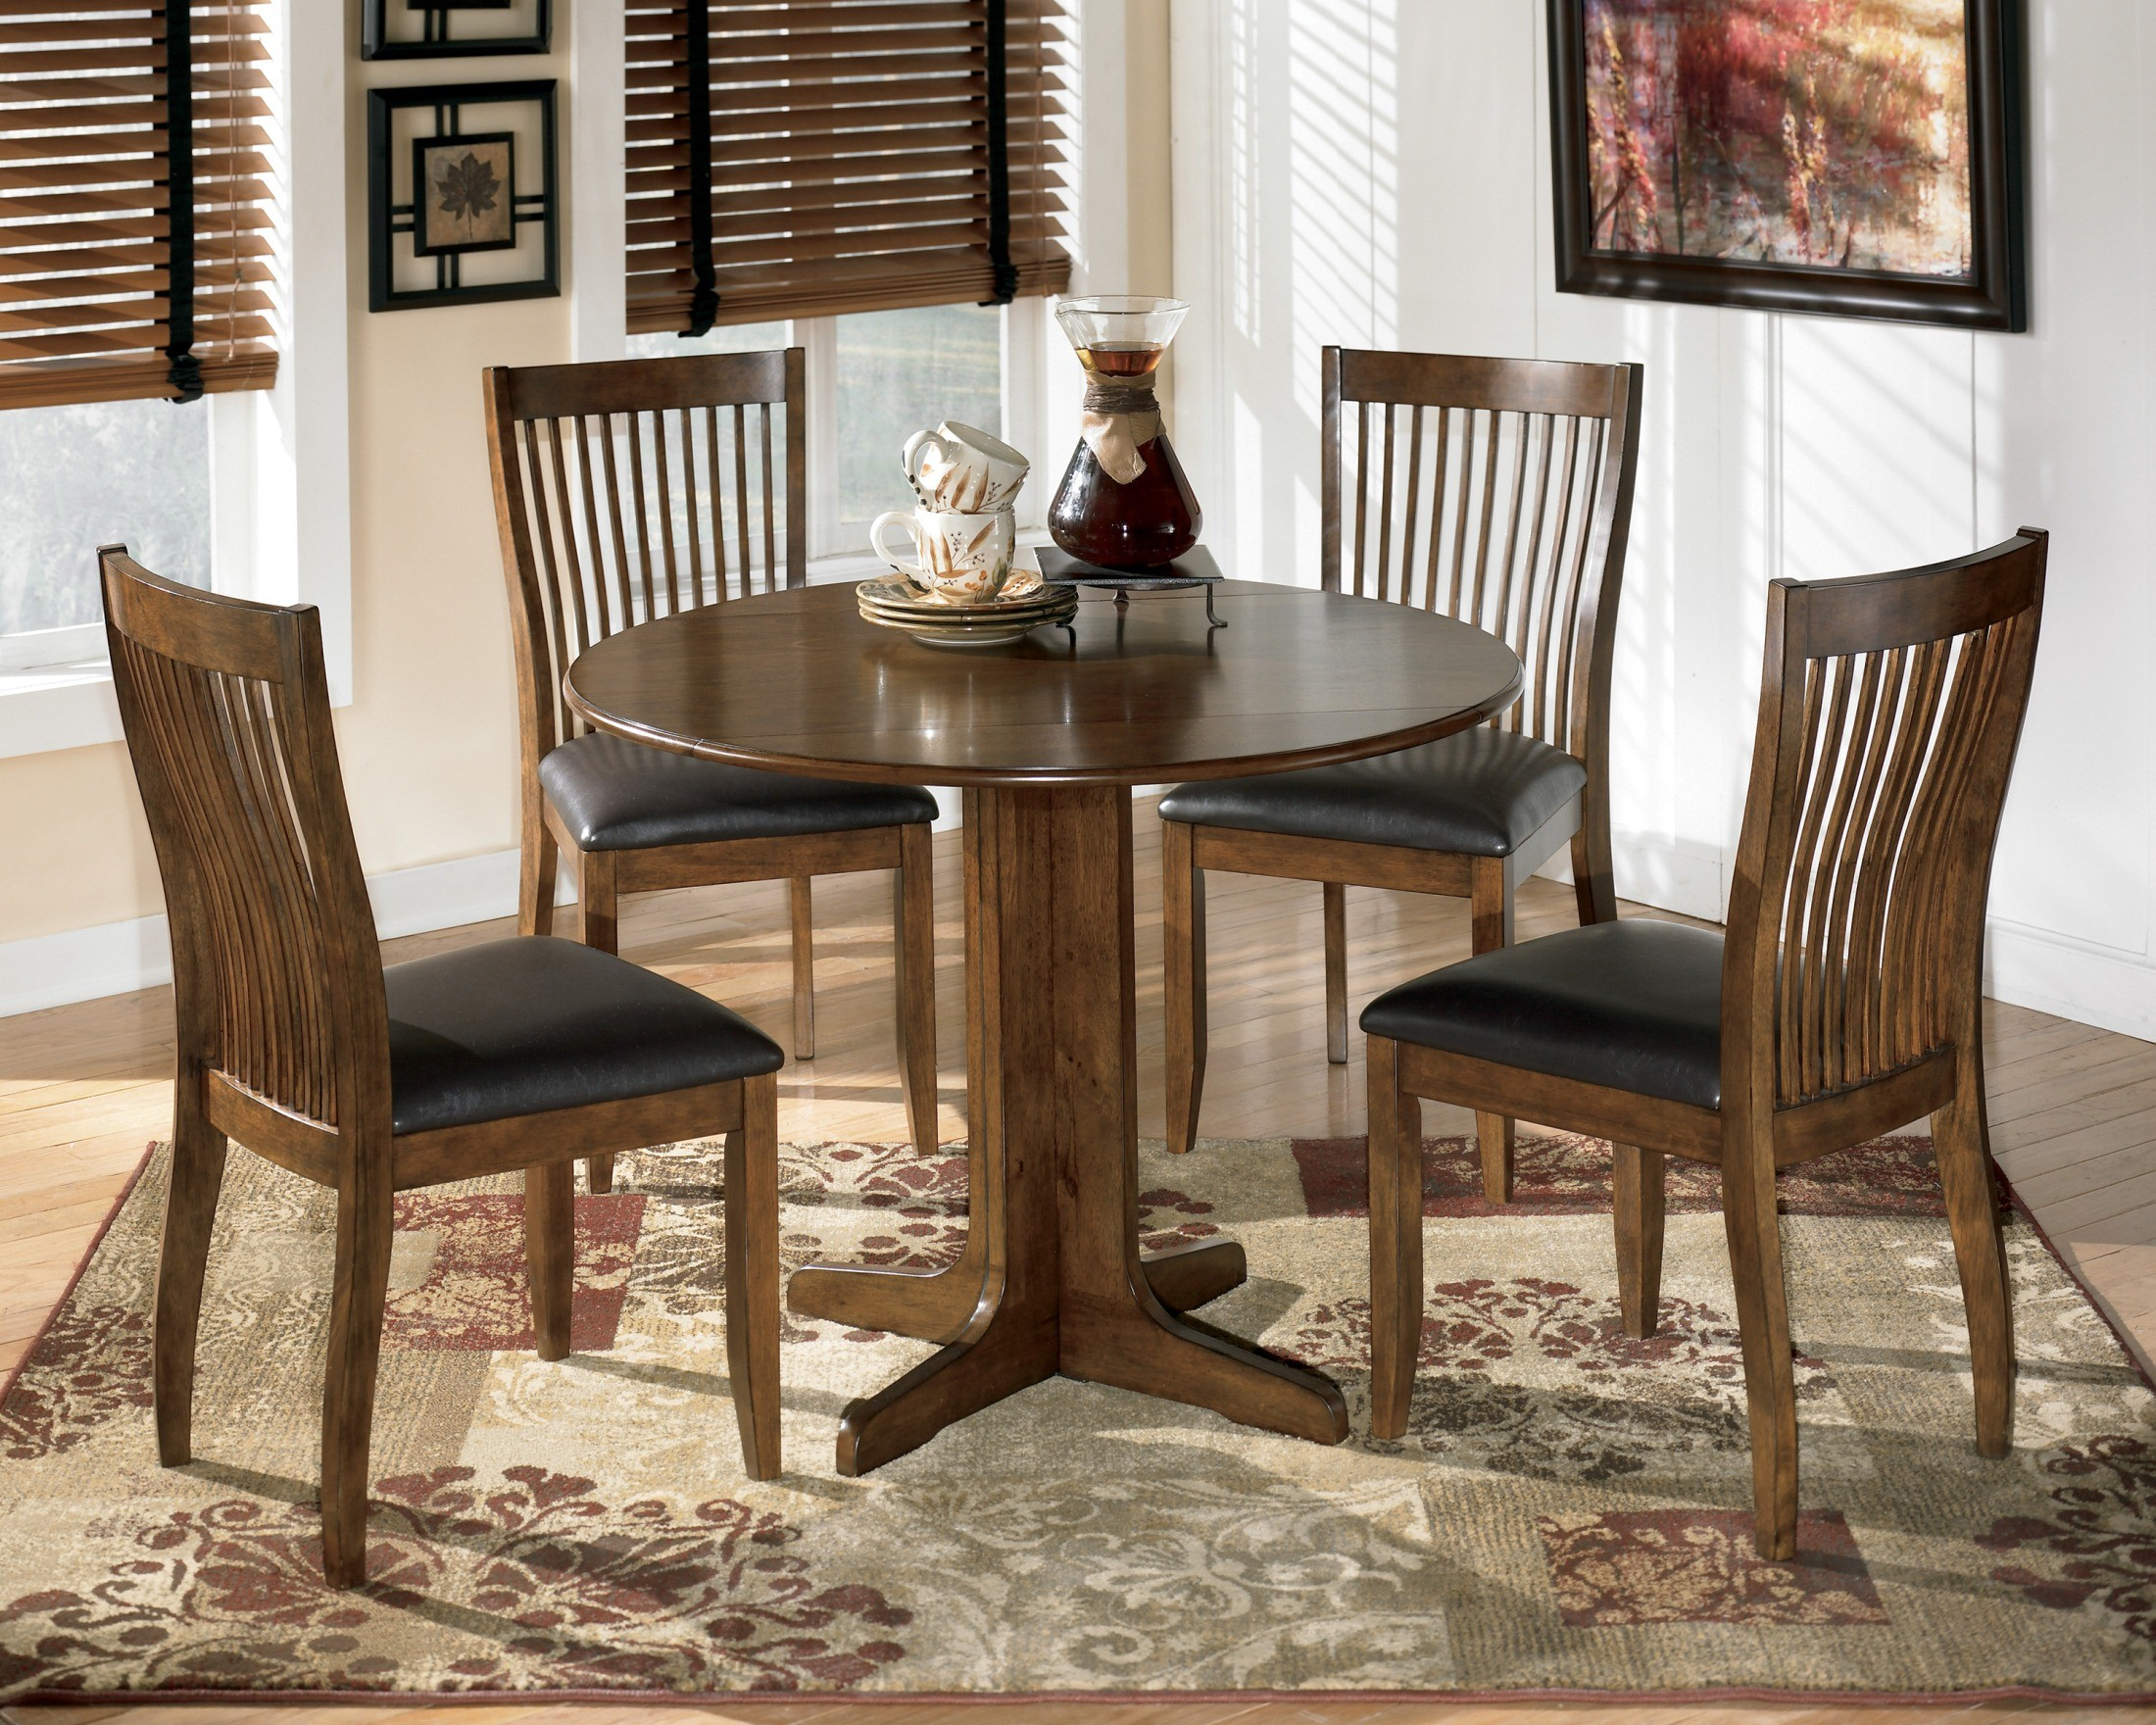 Stuman Round Drop Leaf Dining Table Set From Ashley D293 15